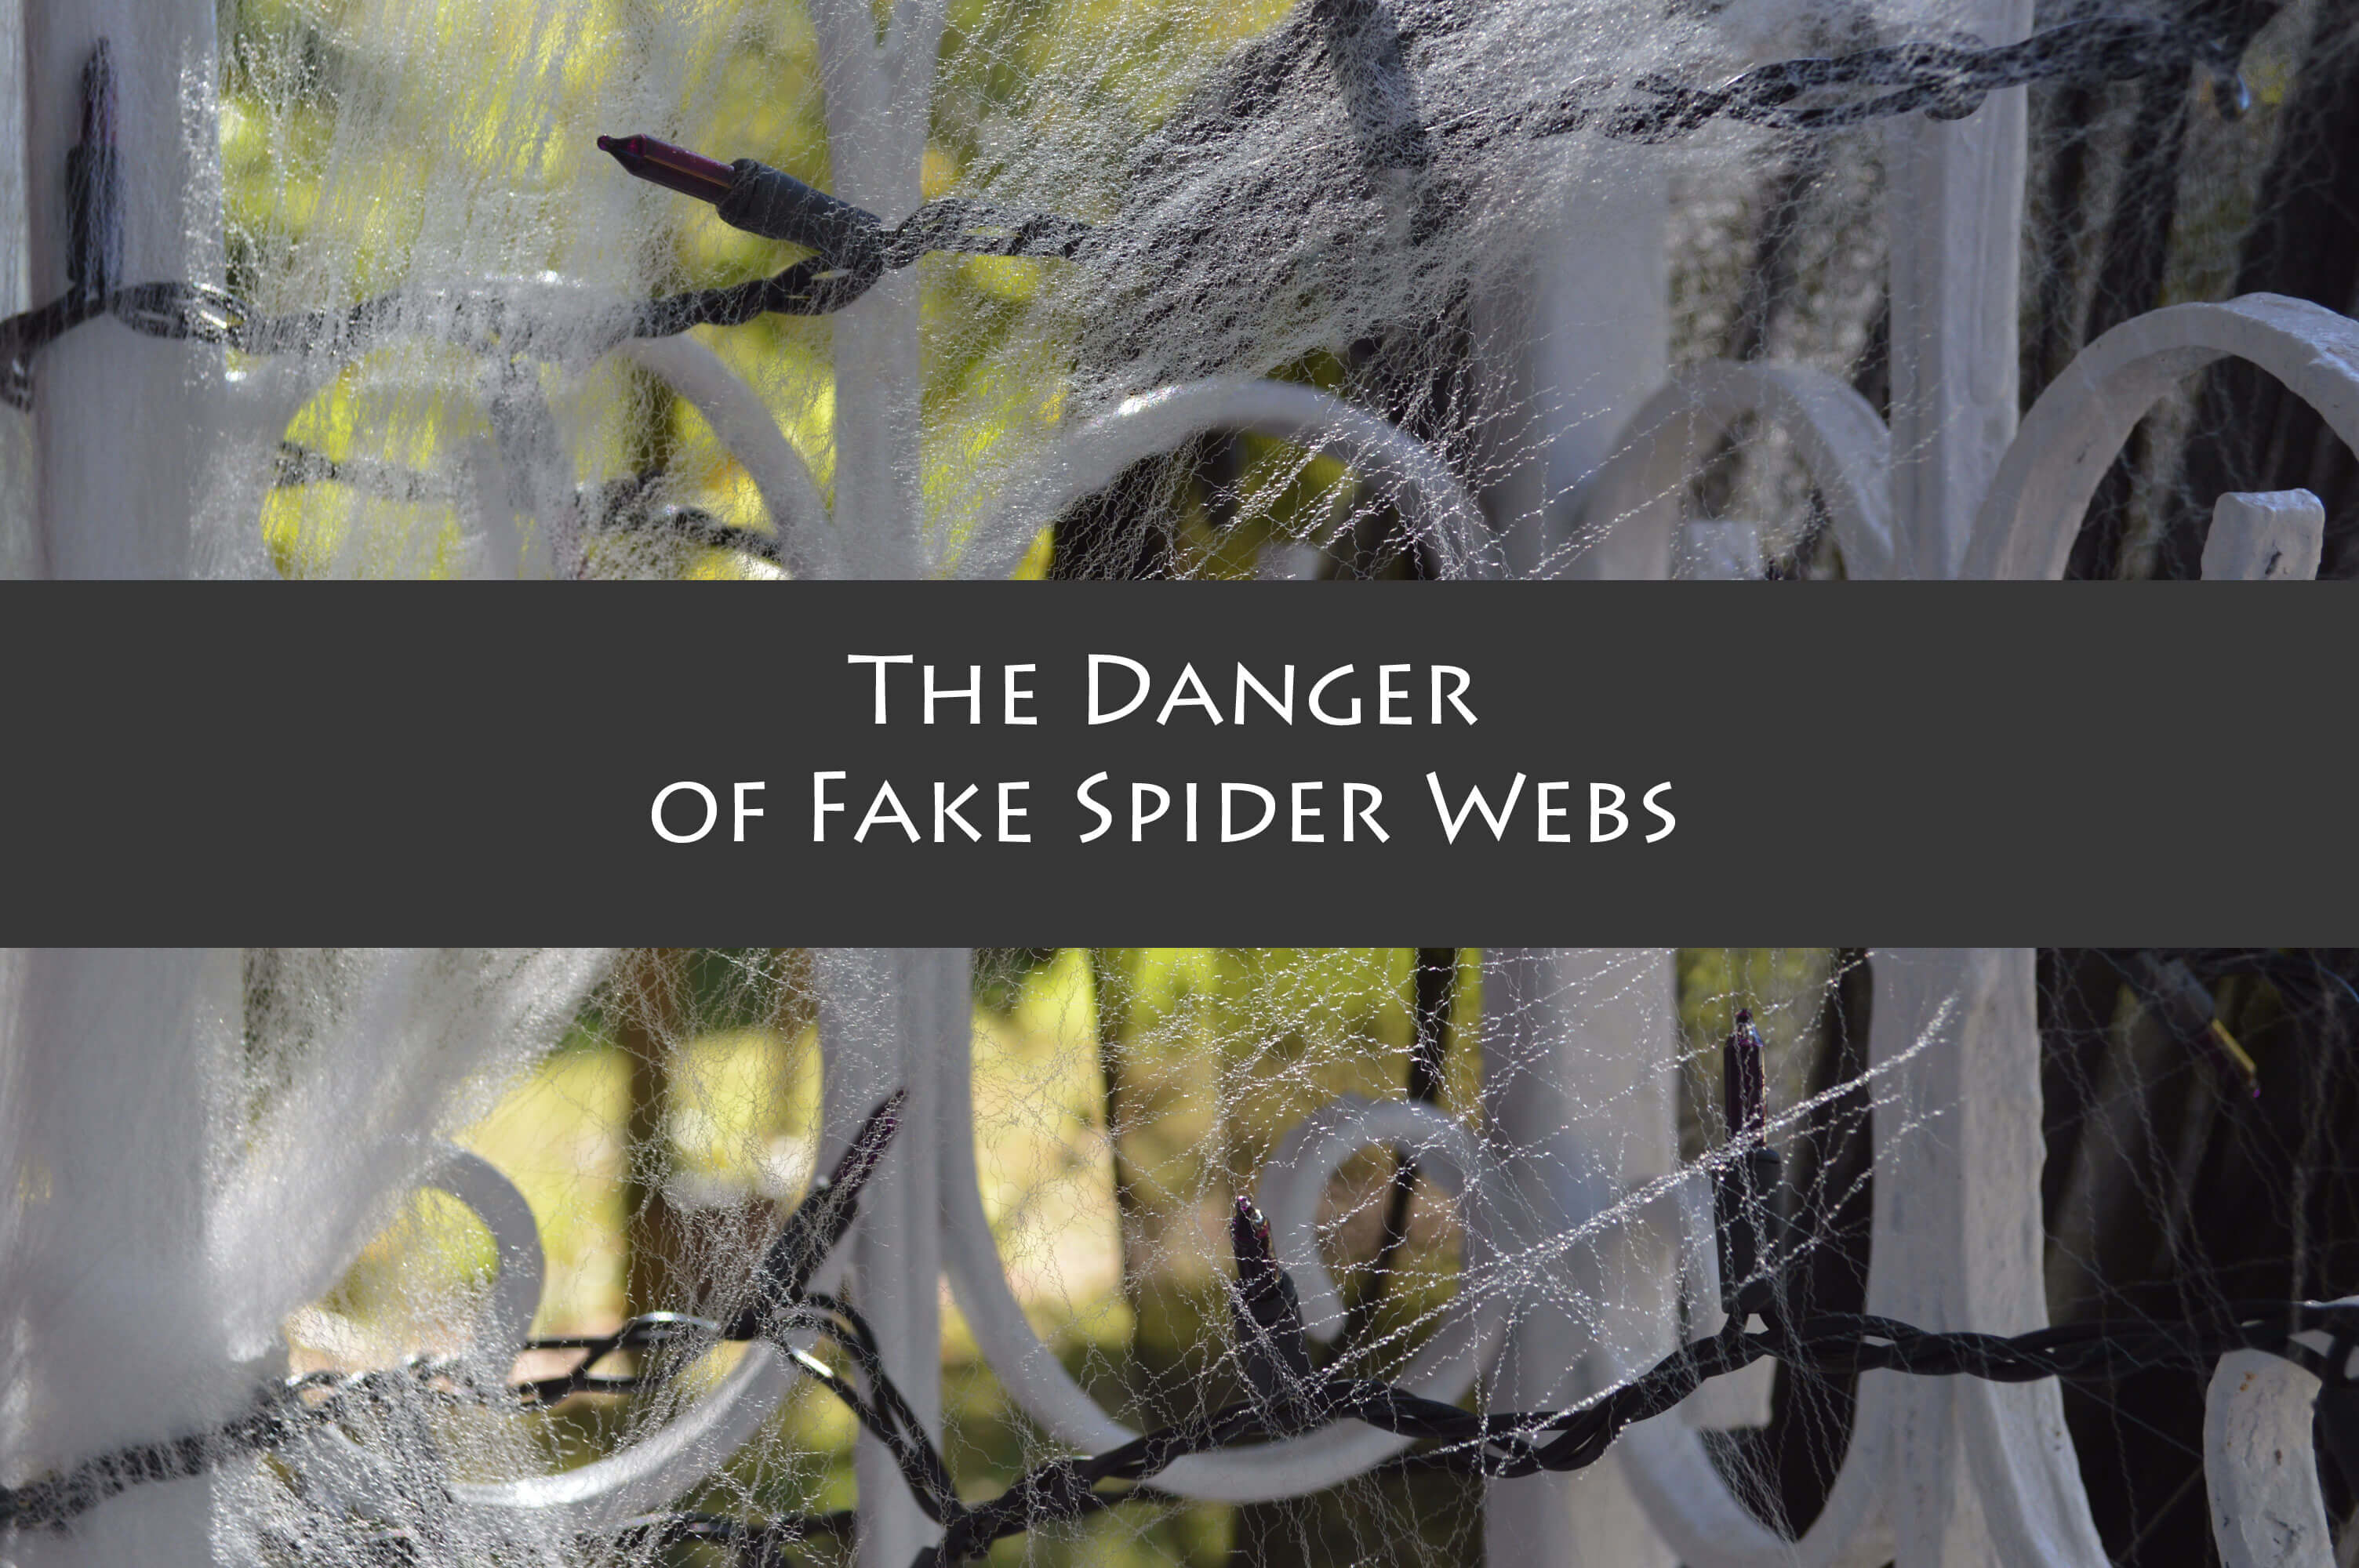 fake spider webs